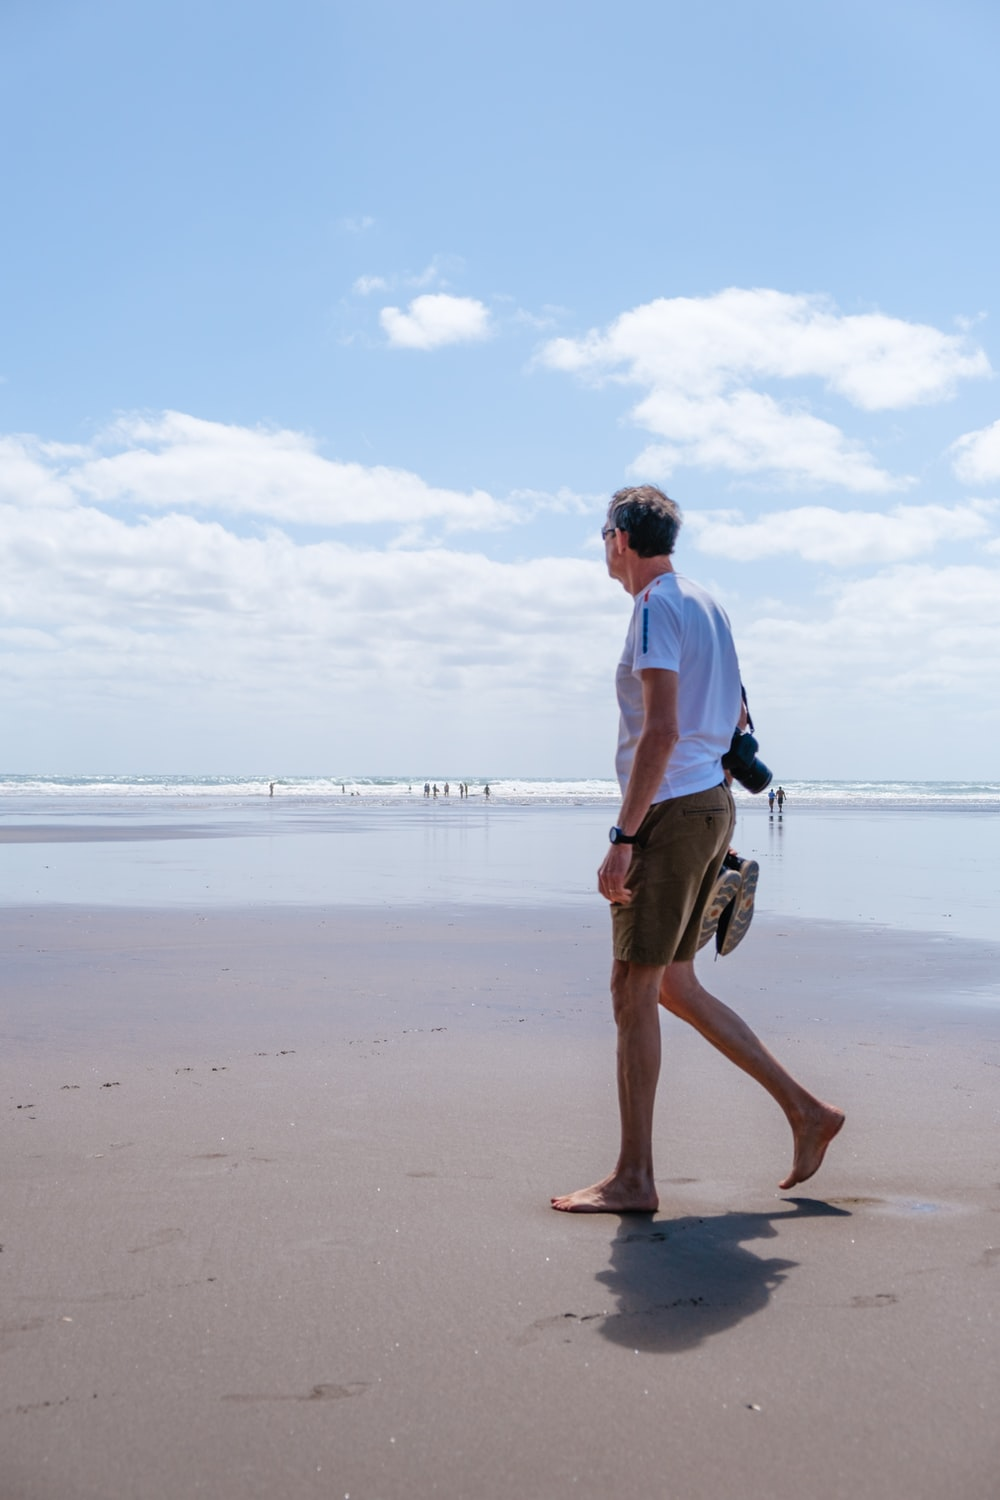 man in white shirt and brown shorts holding black and white dog on beach during daytime